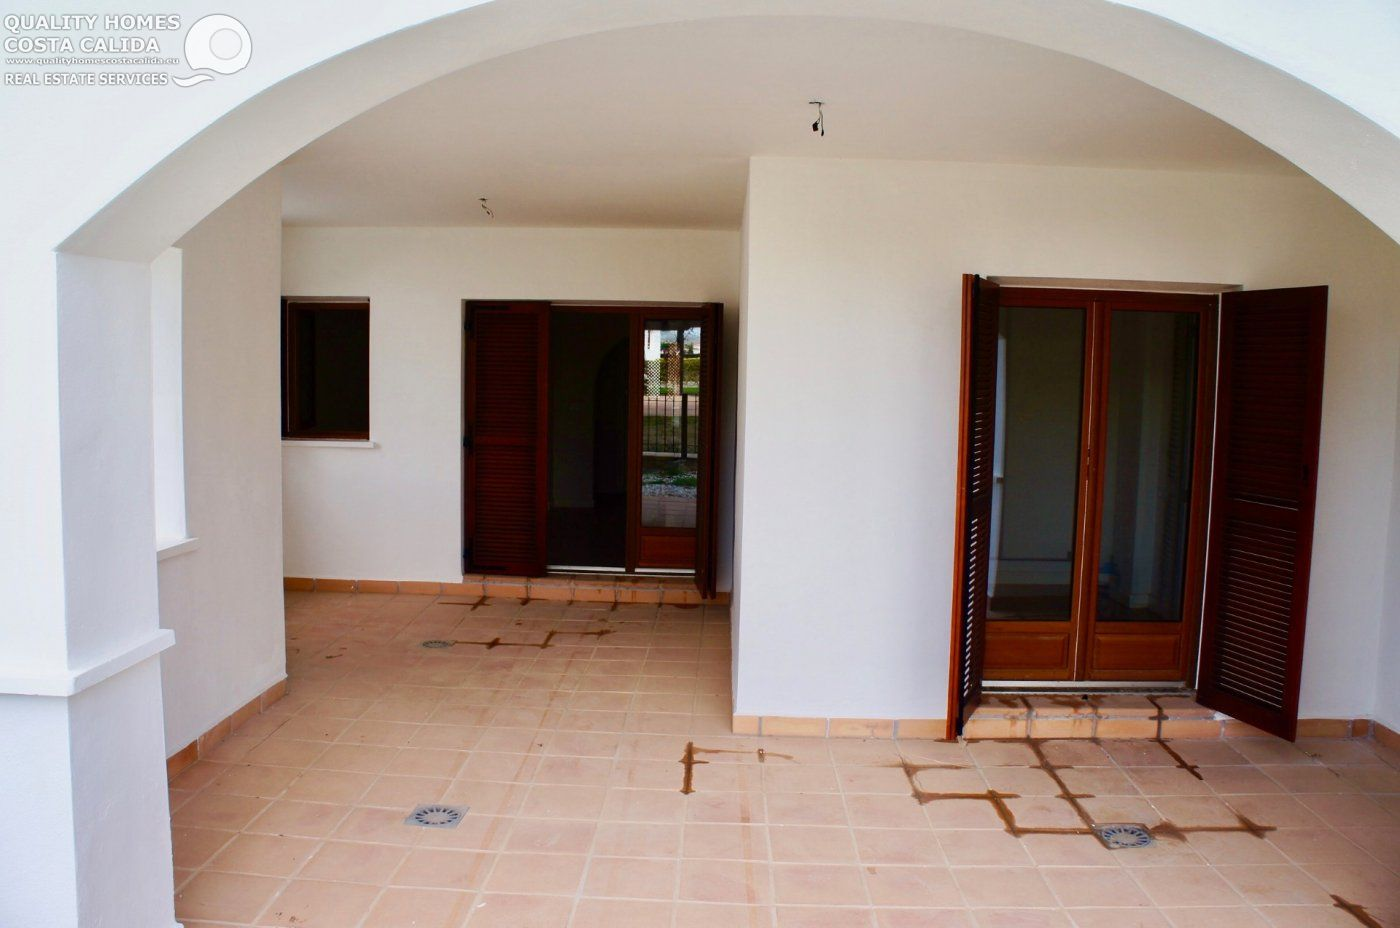 Gallery Image 2 of Garden flat with pool view, 2 bed and 2 bath in lovely Golf Resort